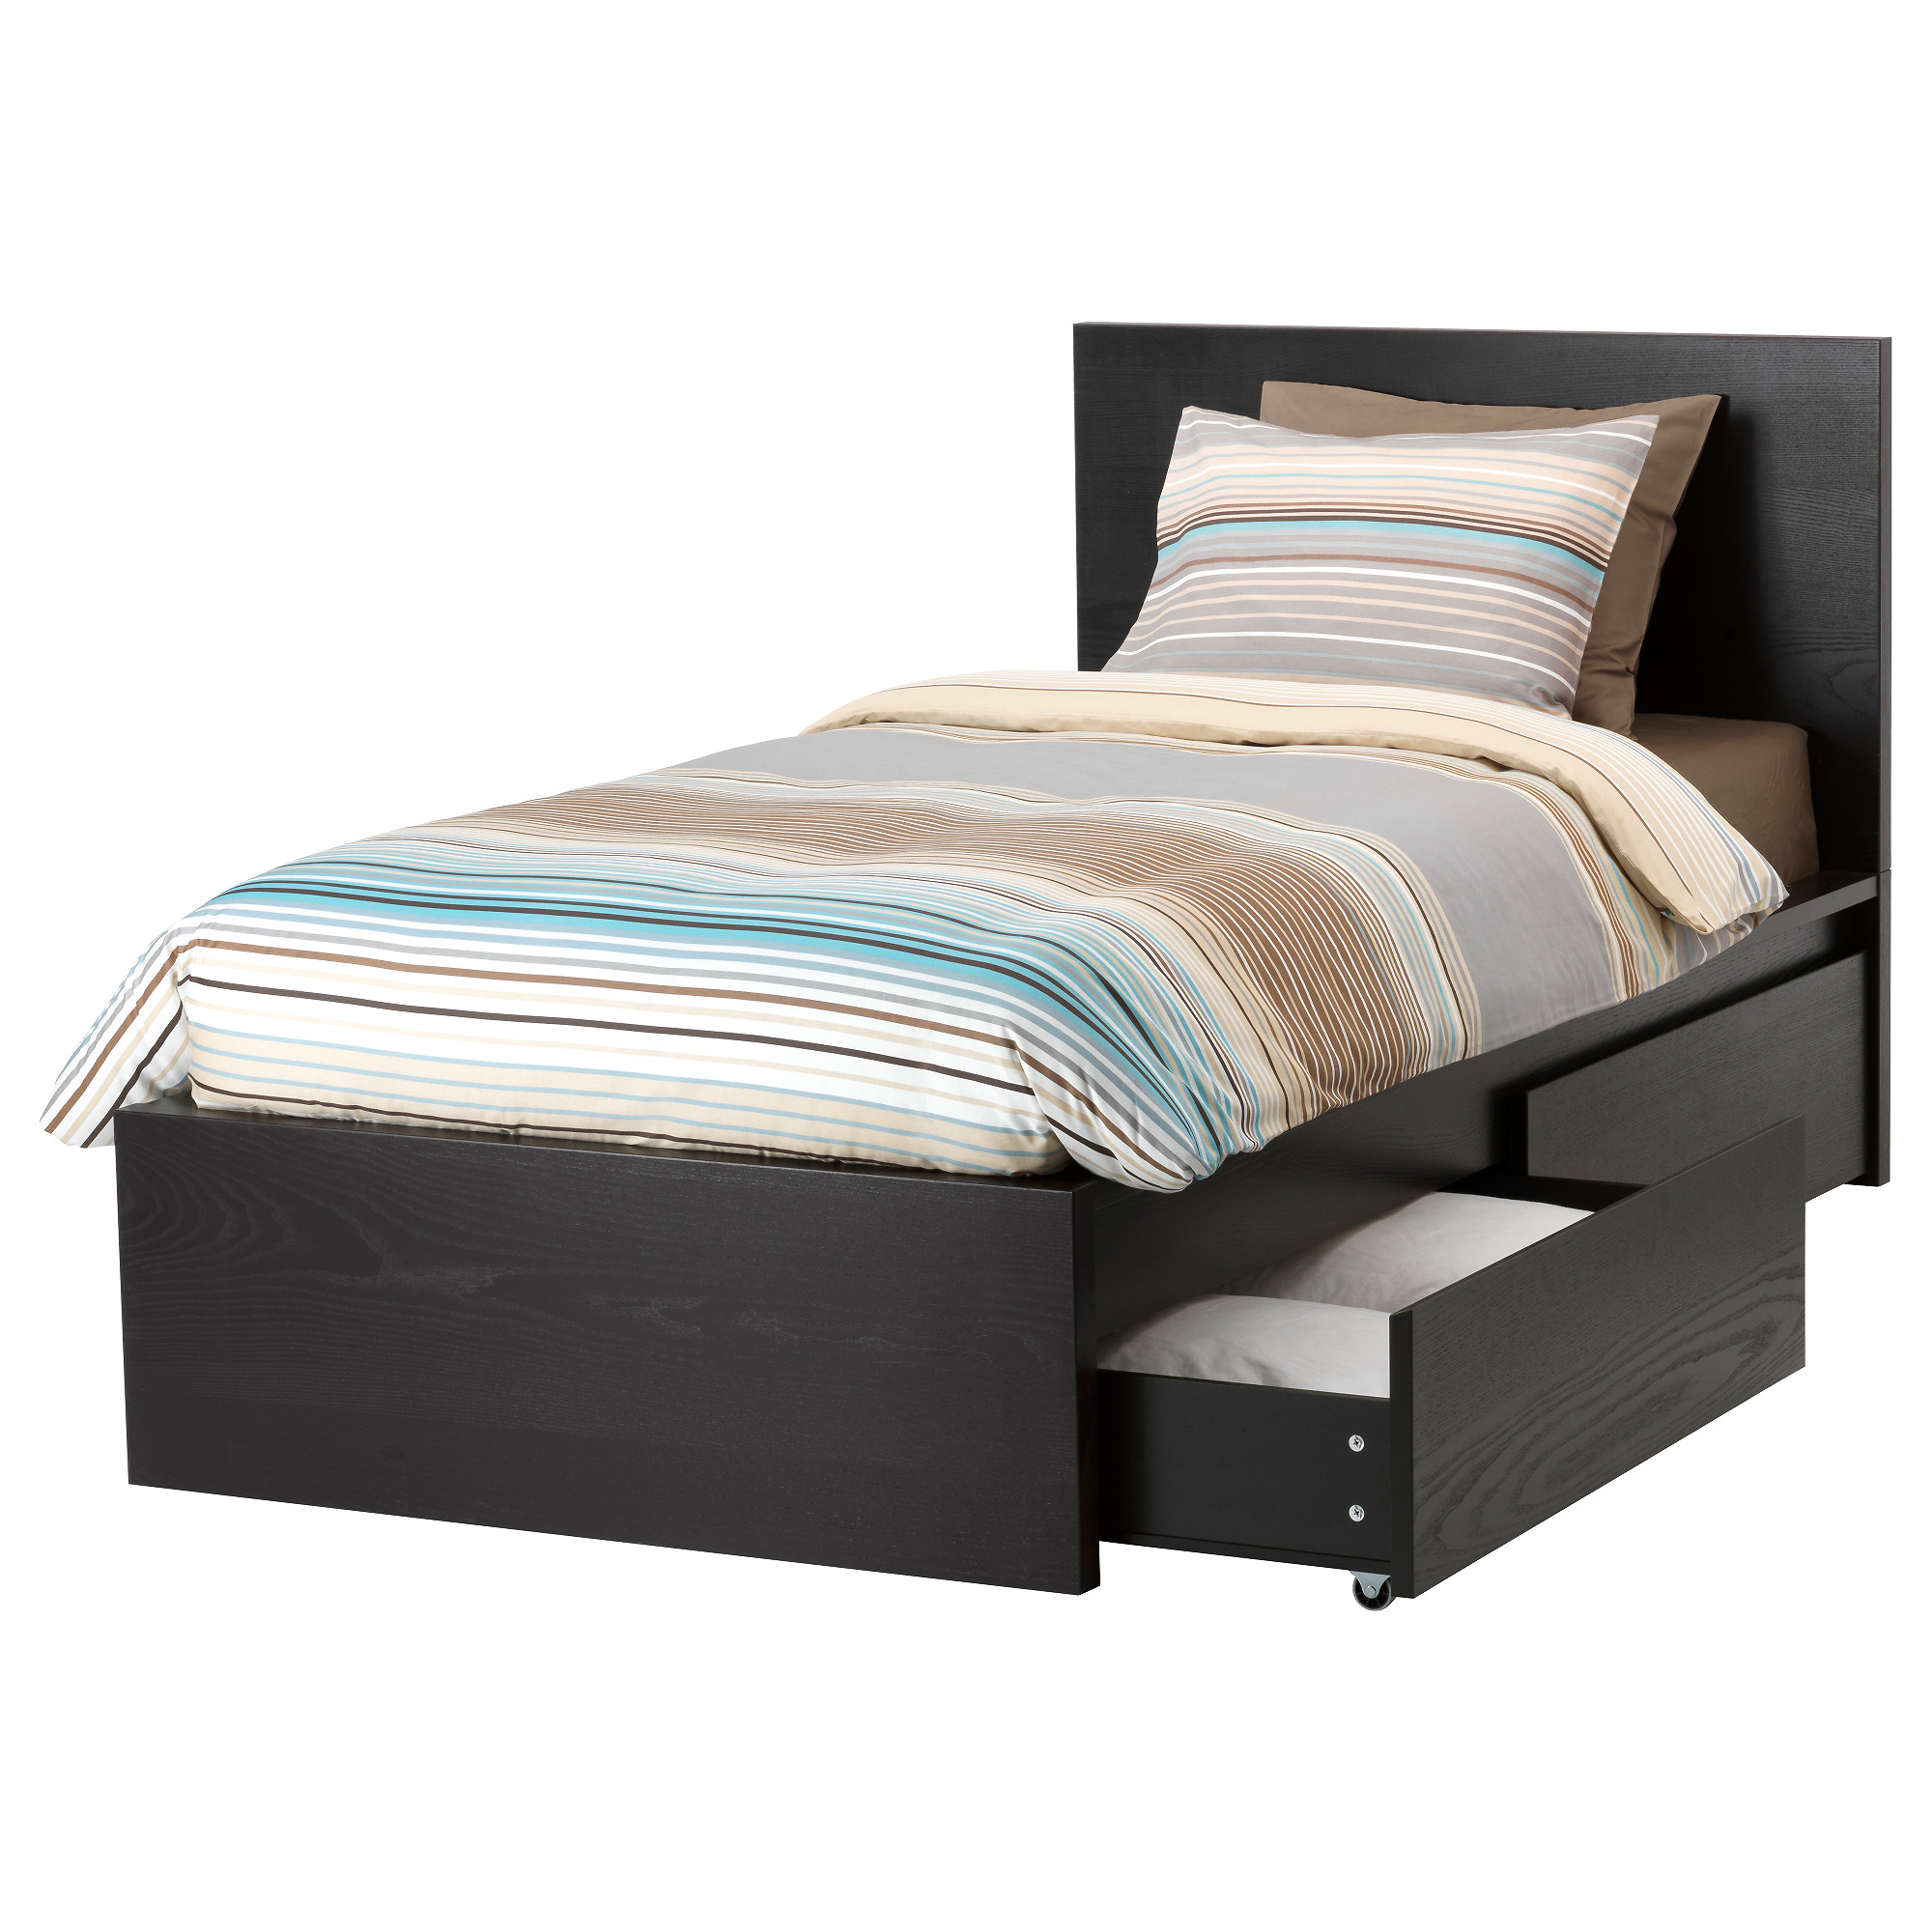 malm high bed frame2 storage boxes black brown lury length